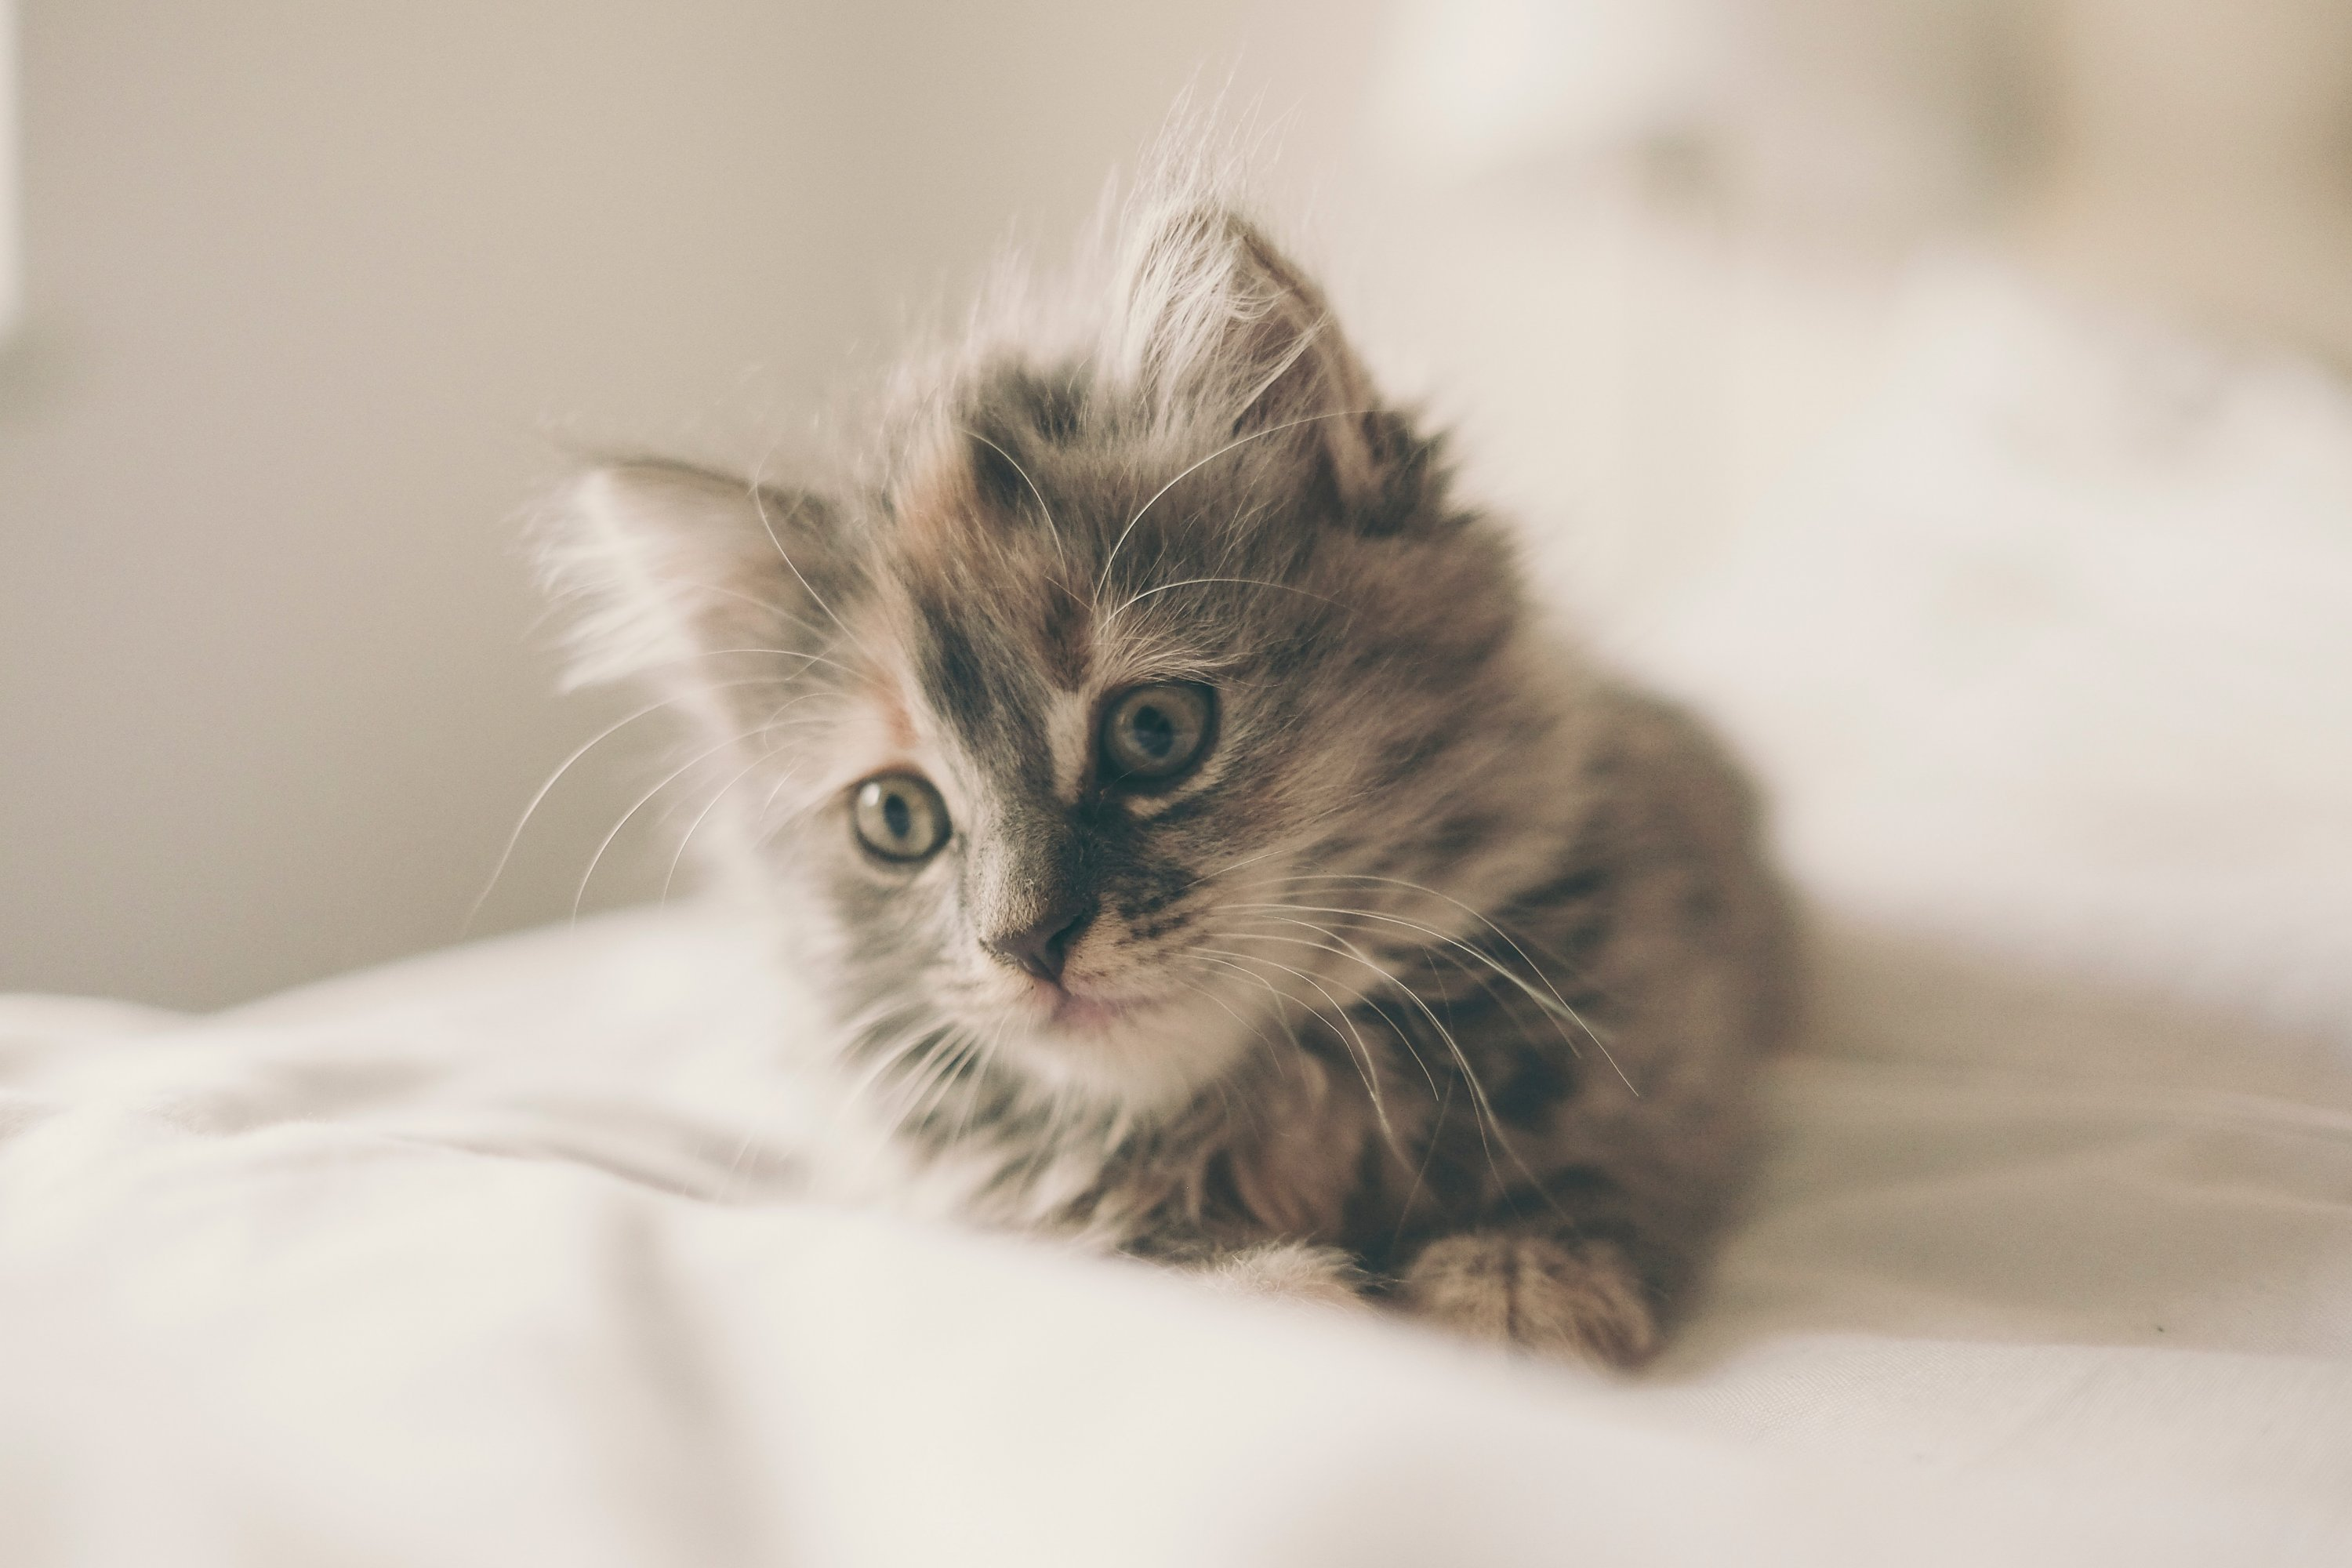 Washingtonian Cutest Cat Contest 2019. All photographs via Unsplash.